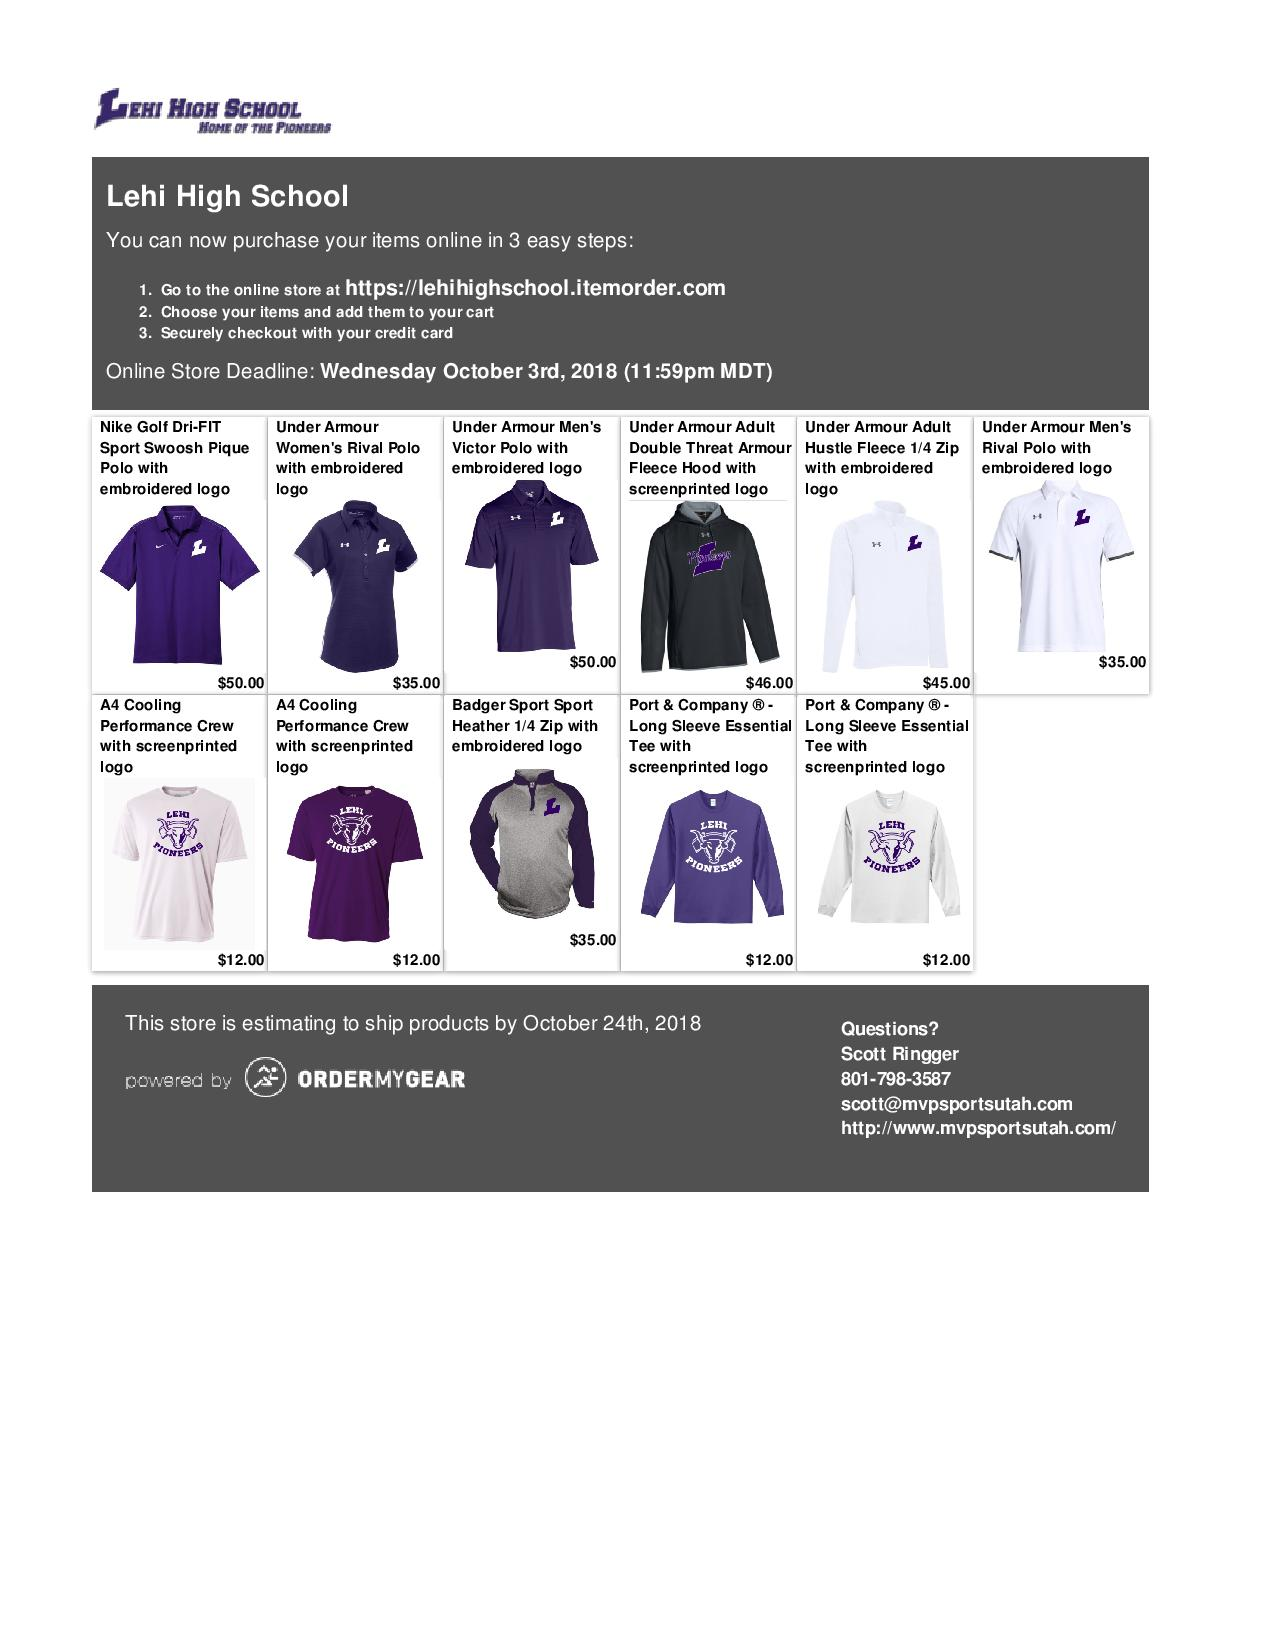 New Lehi Gear Available For Purchase